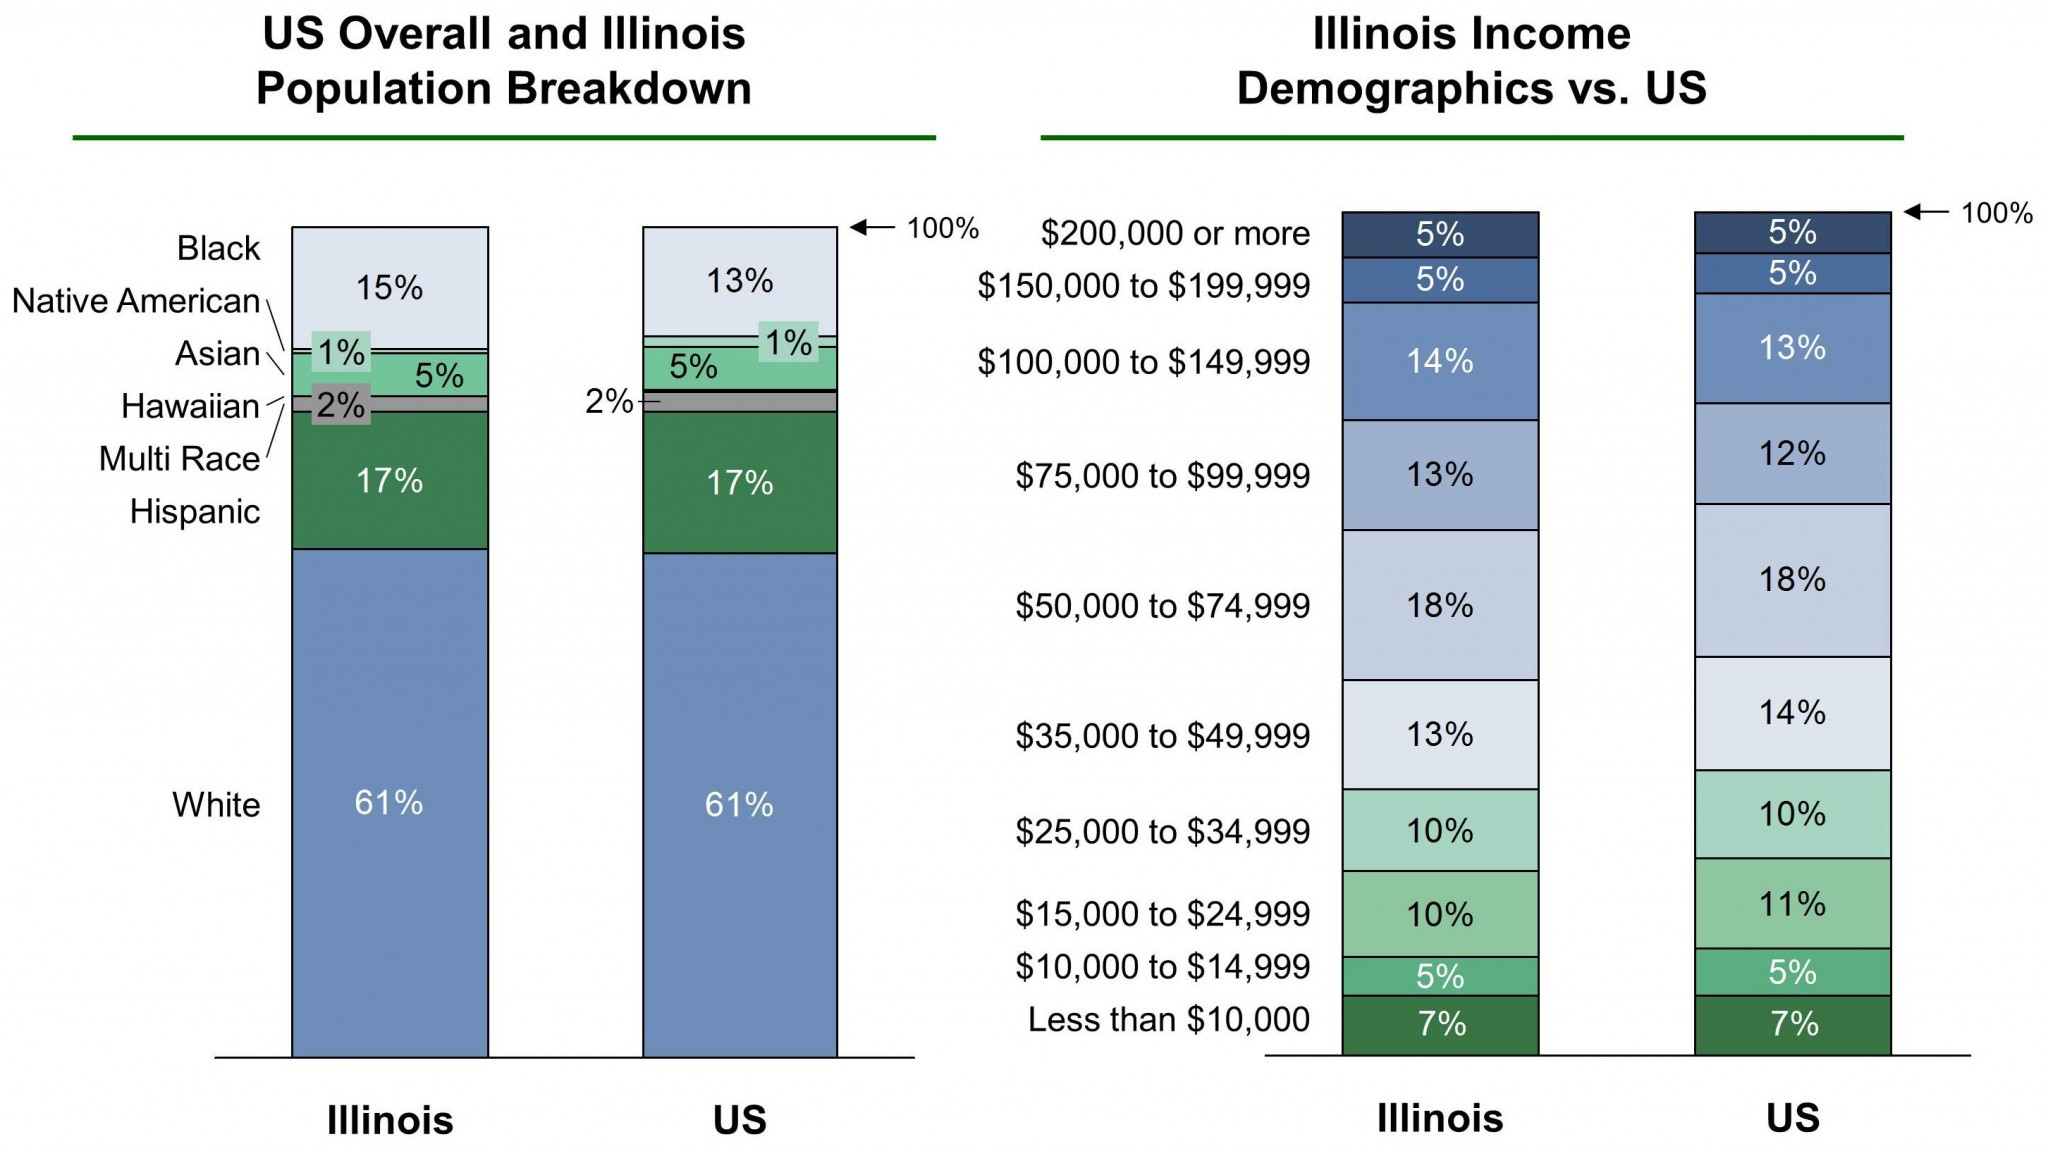 Illinois EB-5 Regional Center Demographics VF